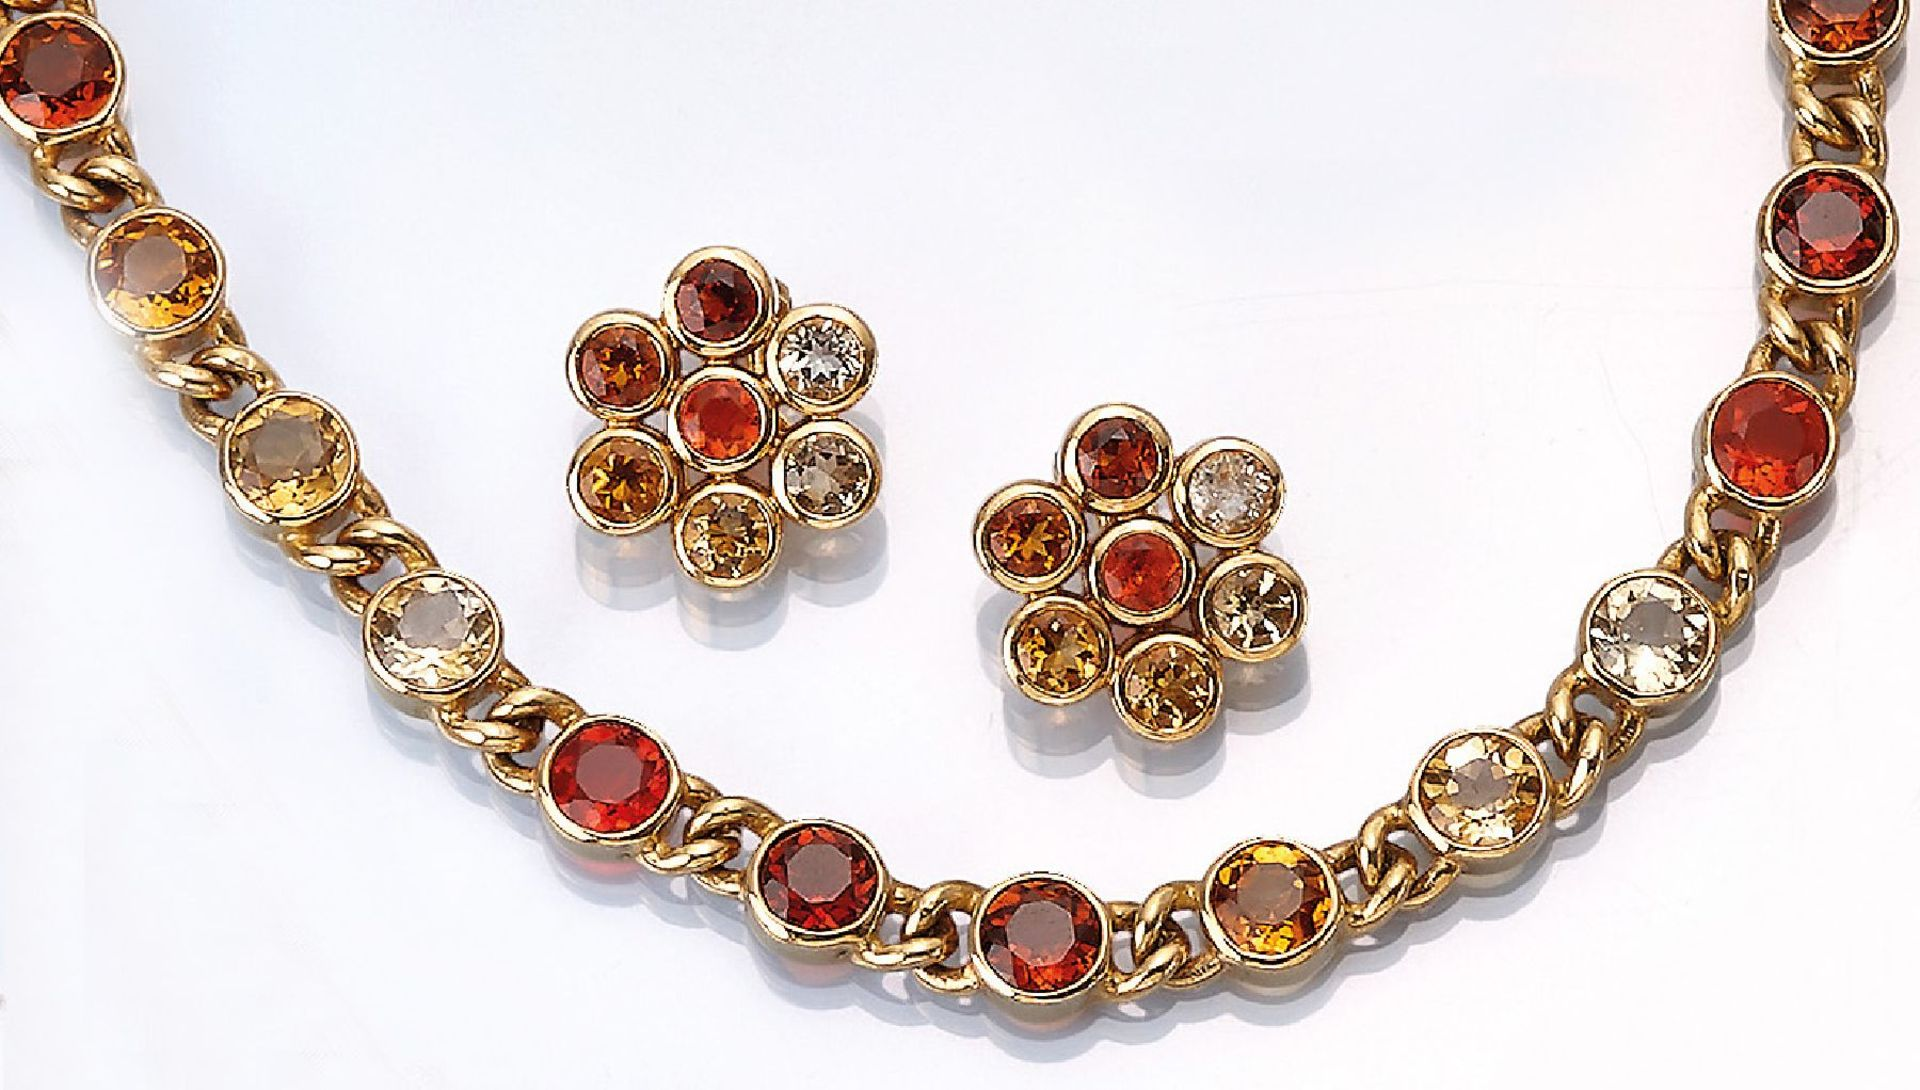 Los 61516 - 18 kt gold jewelry set with fire opals , YG 750/000, comprised of: Necklace l. approx. 45 cm, S-